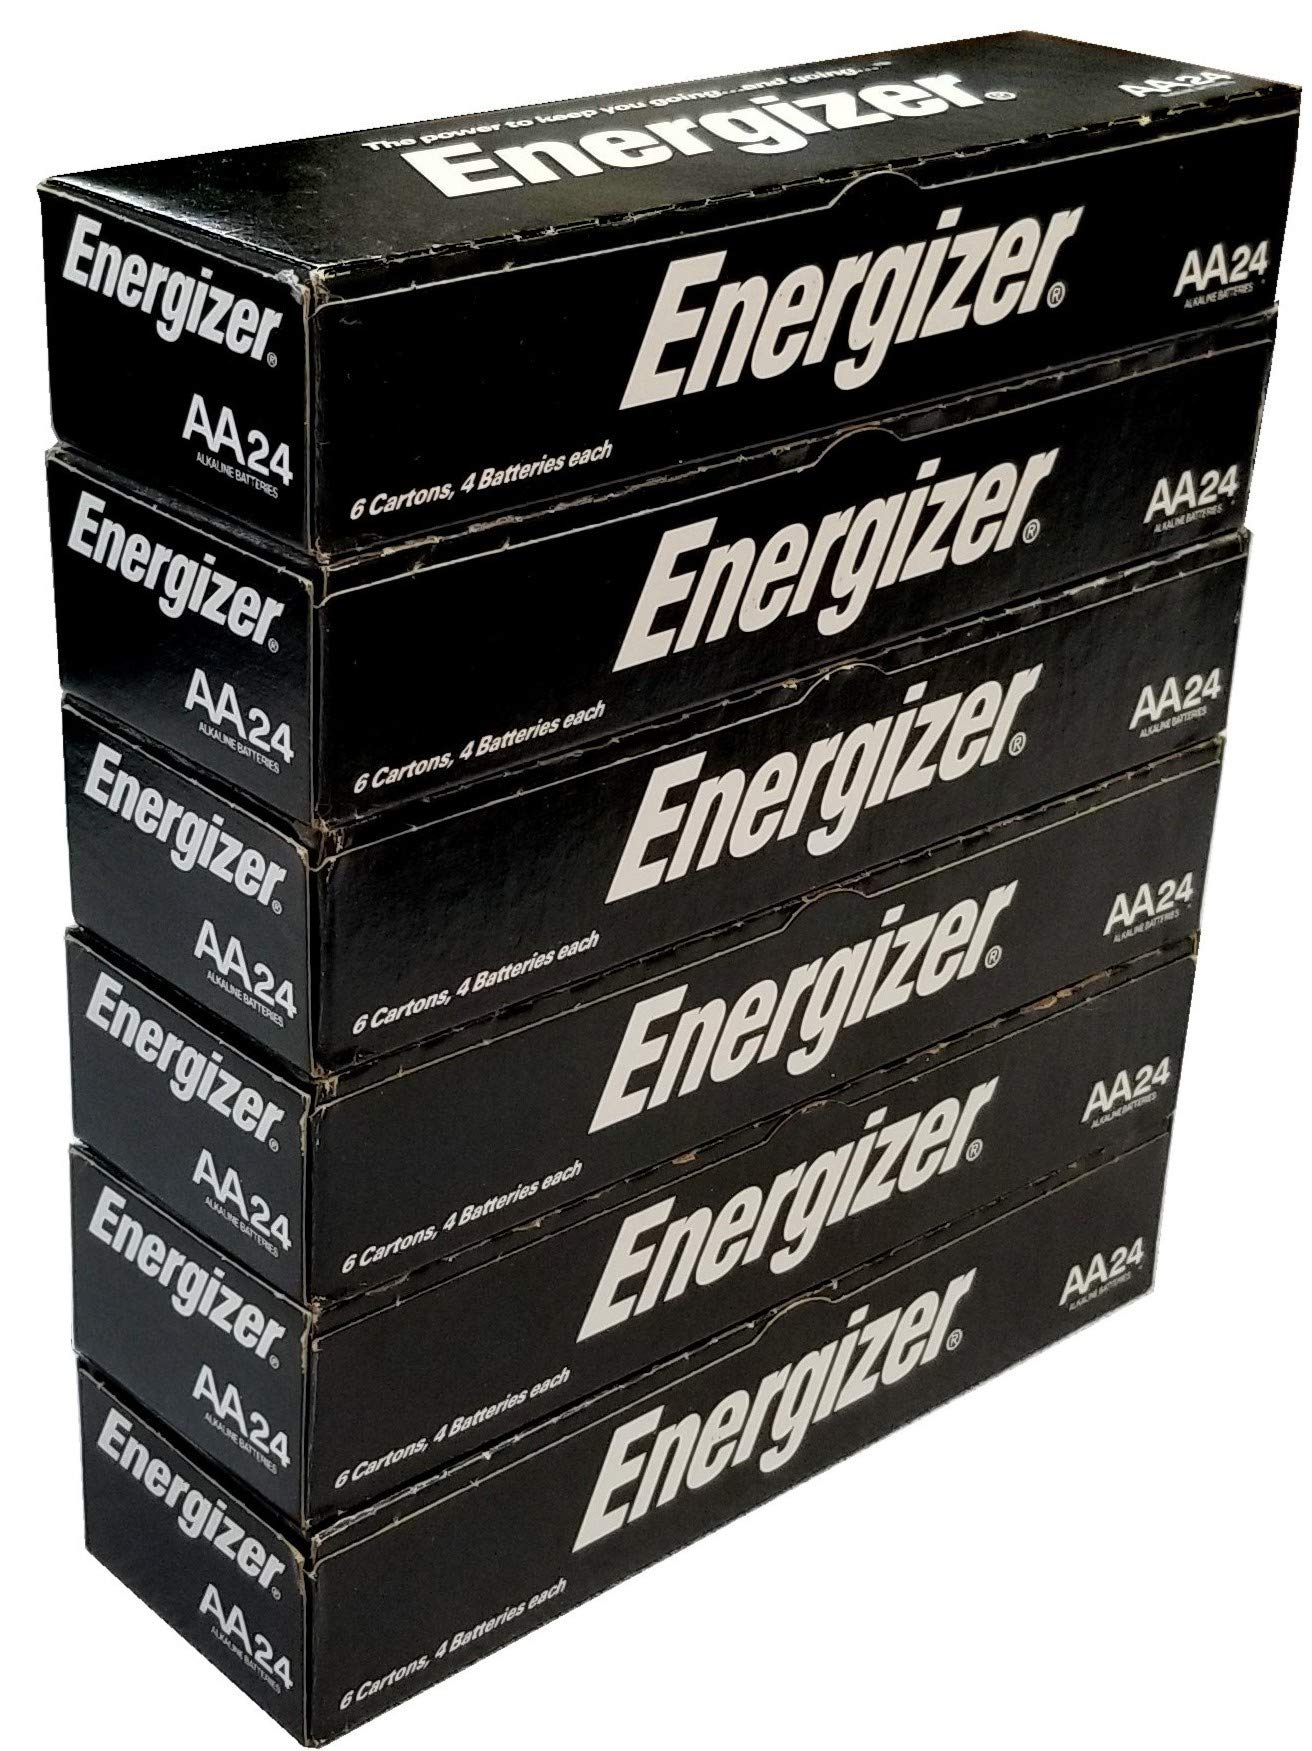 Energizer AA Max Alkaline E91 Batteries Made in USA - Expiration 12/2024 or Later - 144 Count (144) by Energizer